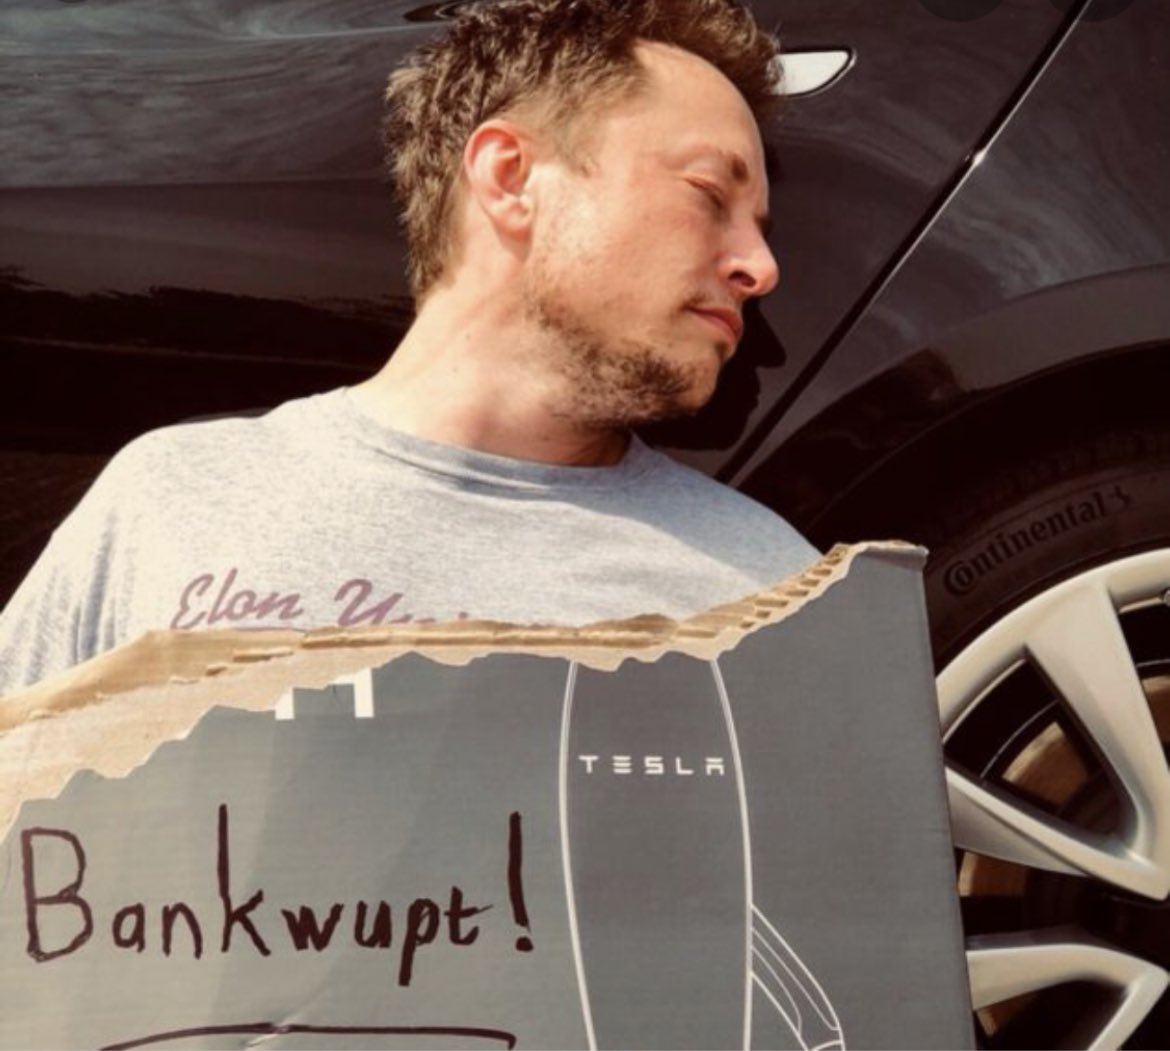 Congratulations to @elonmusk @tesla for the hard work and crazy amount of hours to get into the S&P 500. The road wasn't easy and the hate was real but cheers to you.